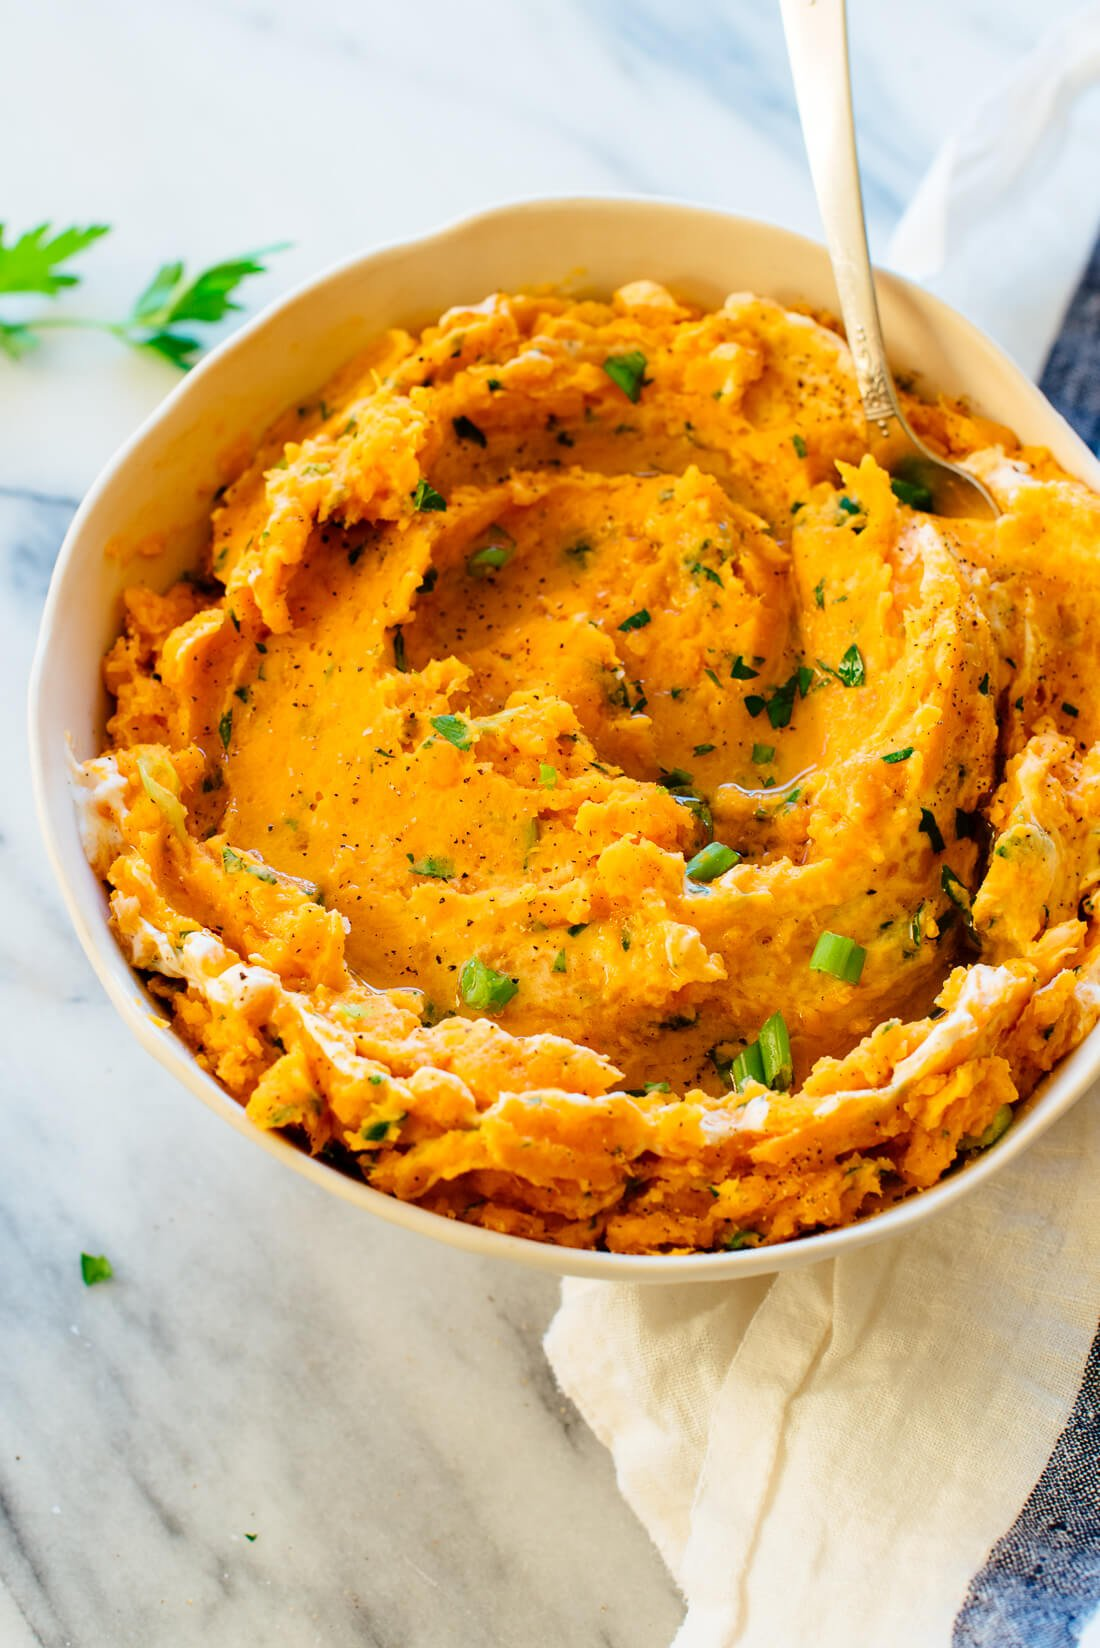 mashed sweet potatoes with herbs and sour cream